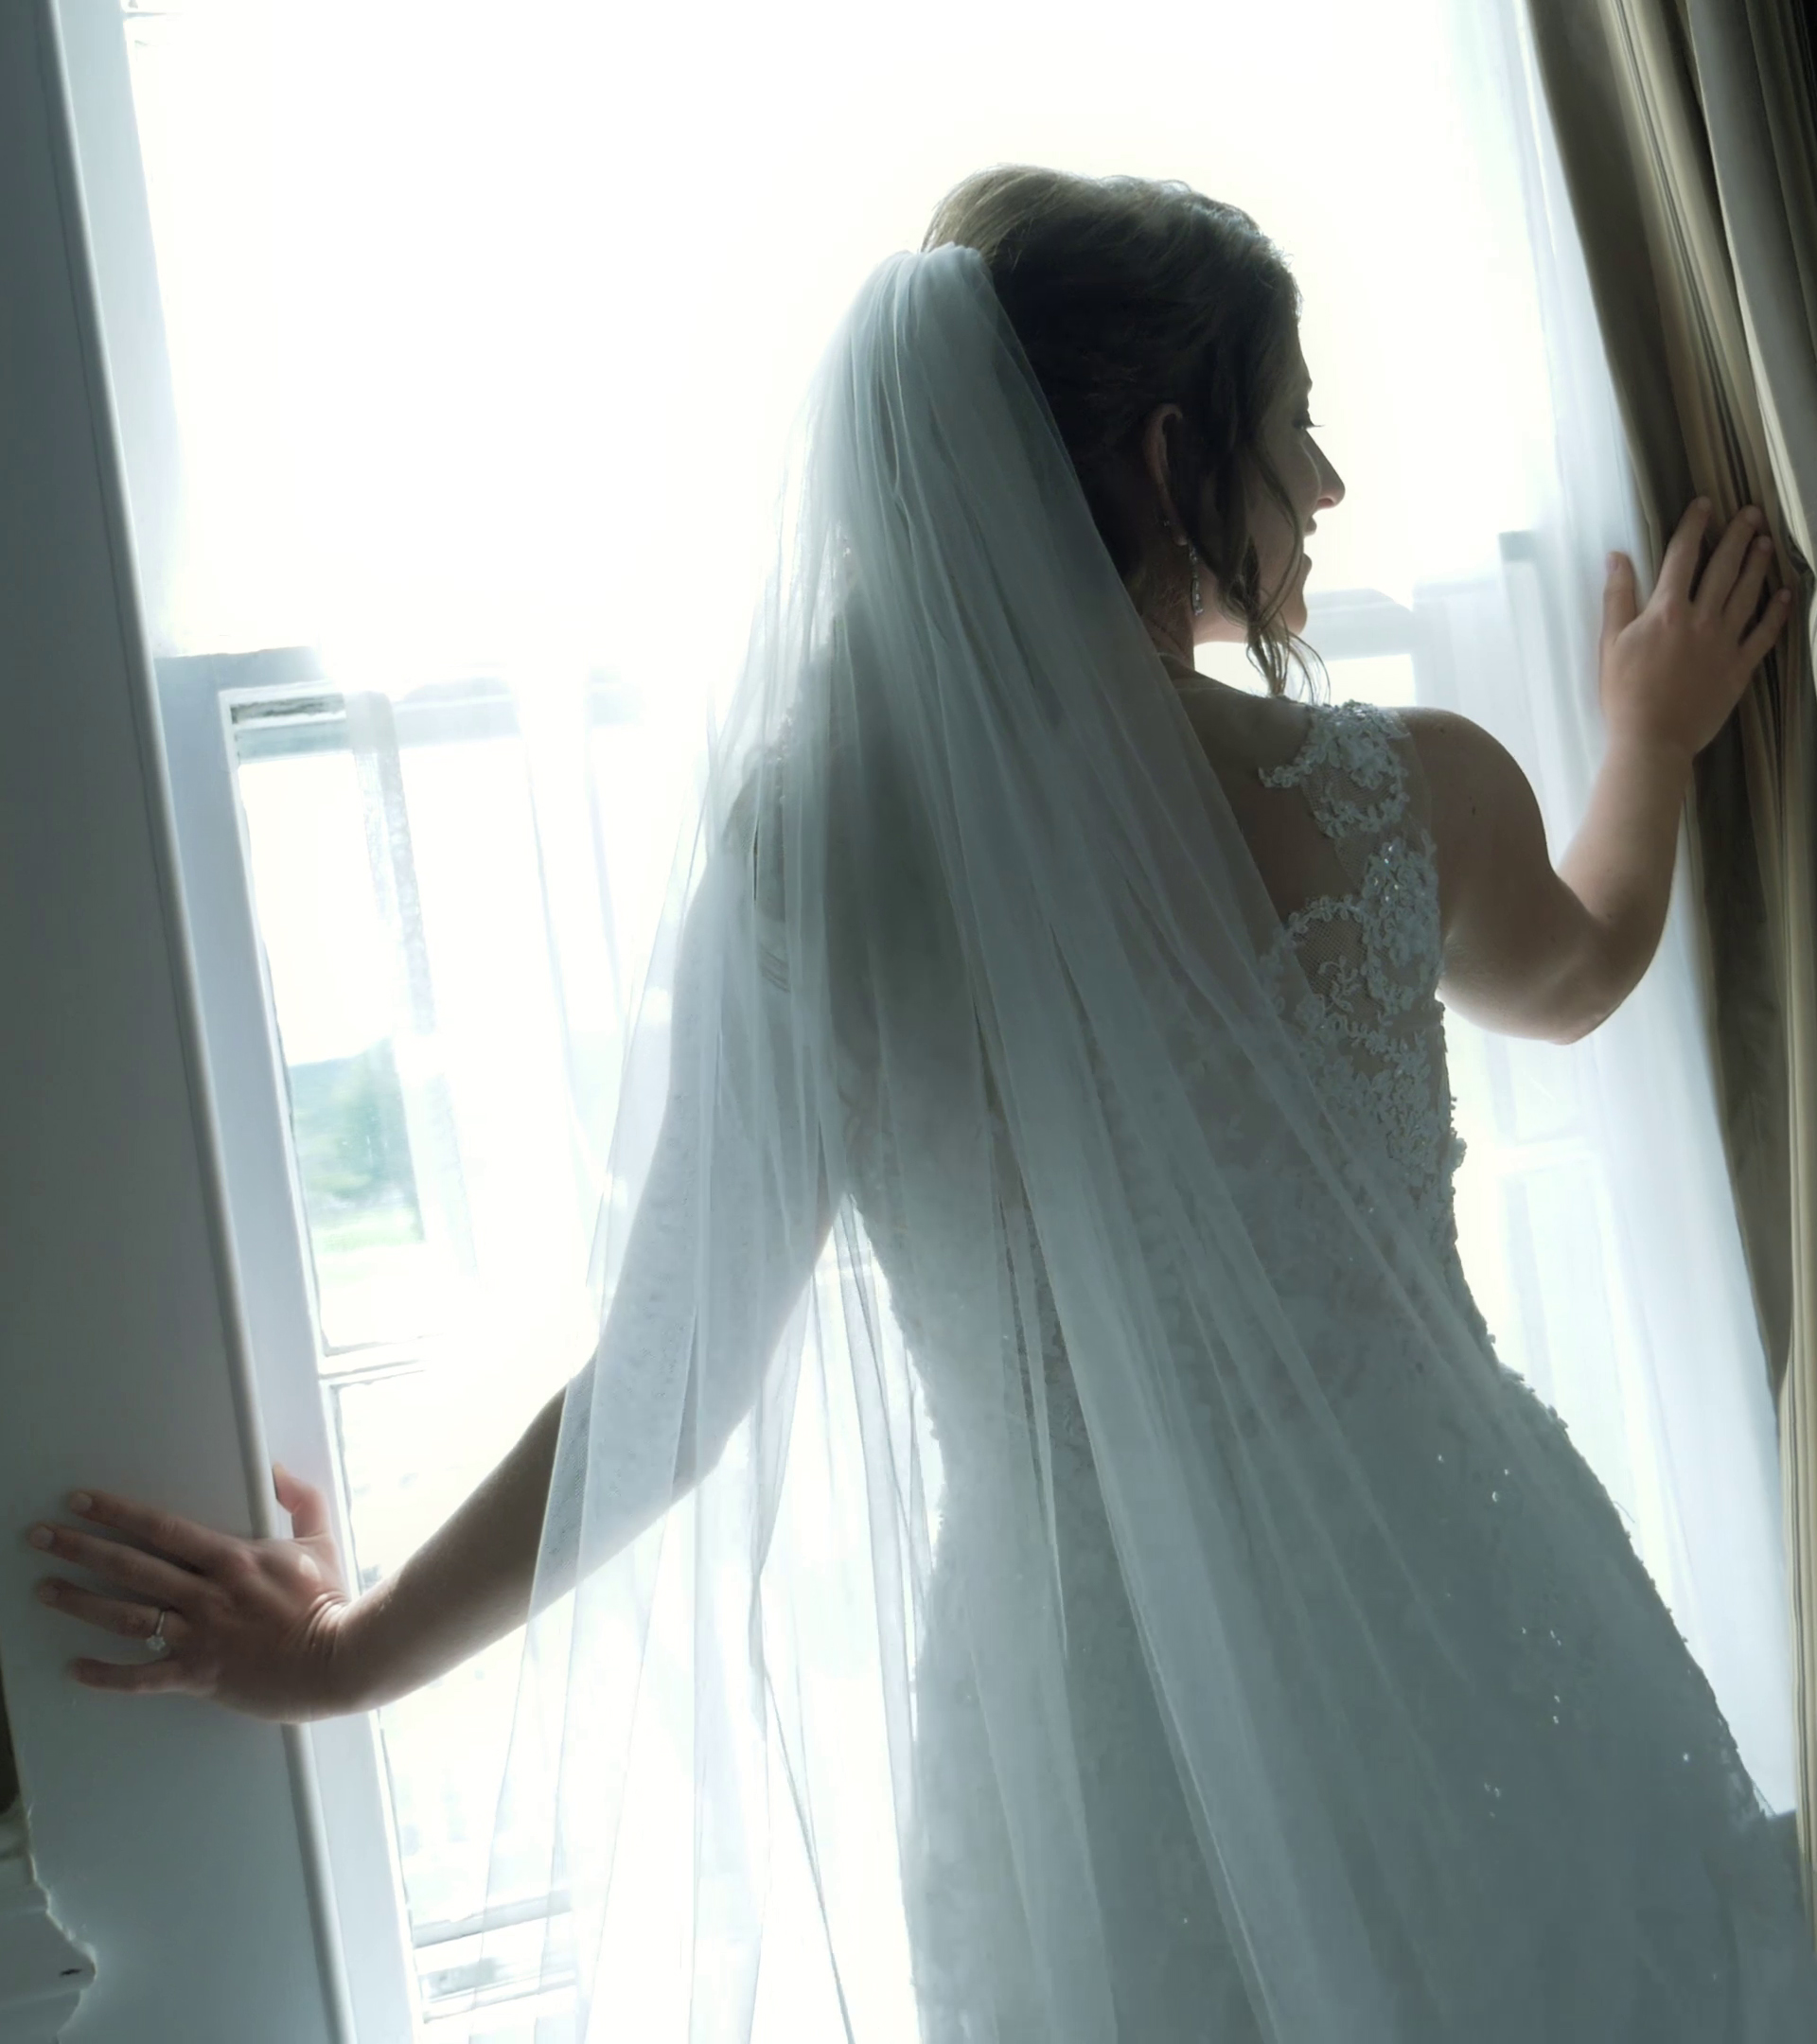 Looking for wedding videography? See our packages